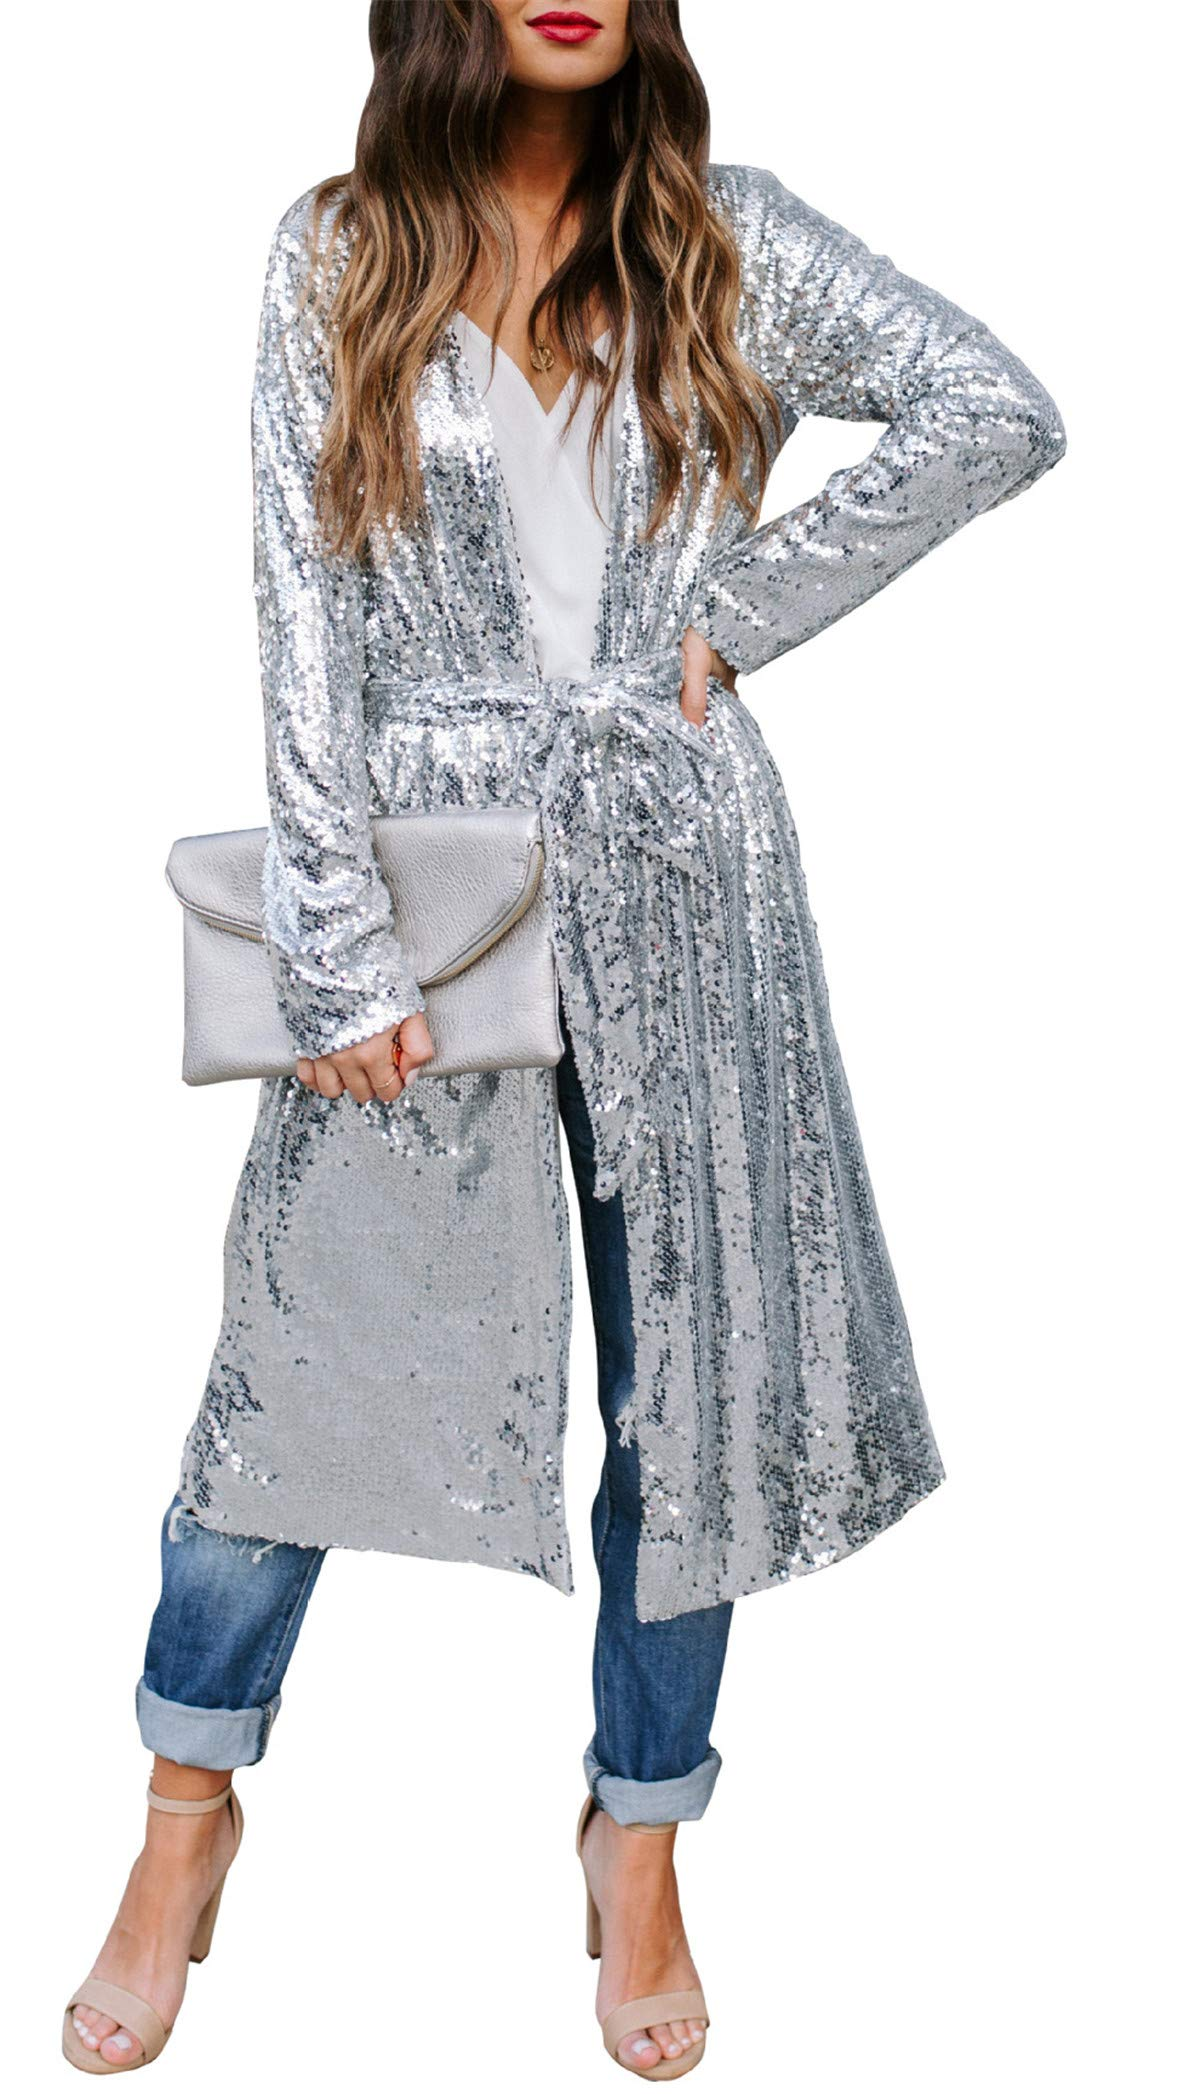 Womens Sparkly Sequins Cover Ups Long Sleeve Slim Fit Open Front Cardigan Coat with Belt